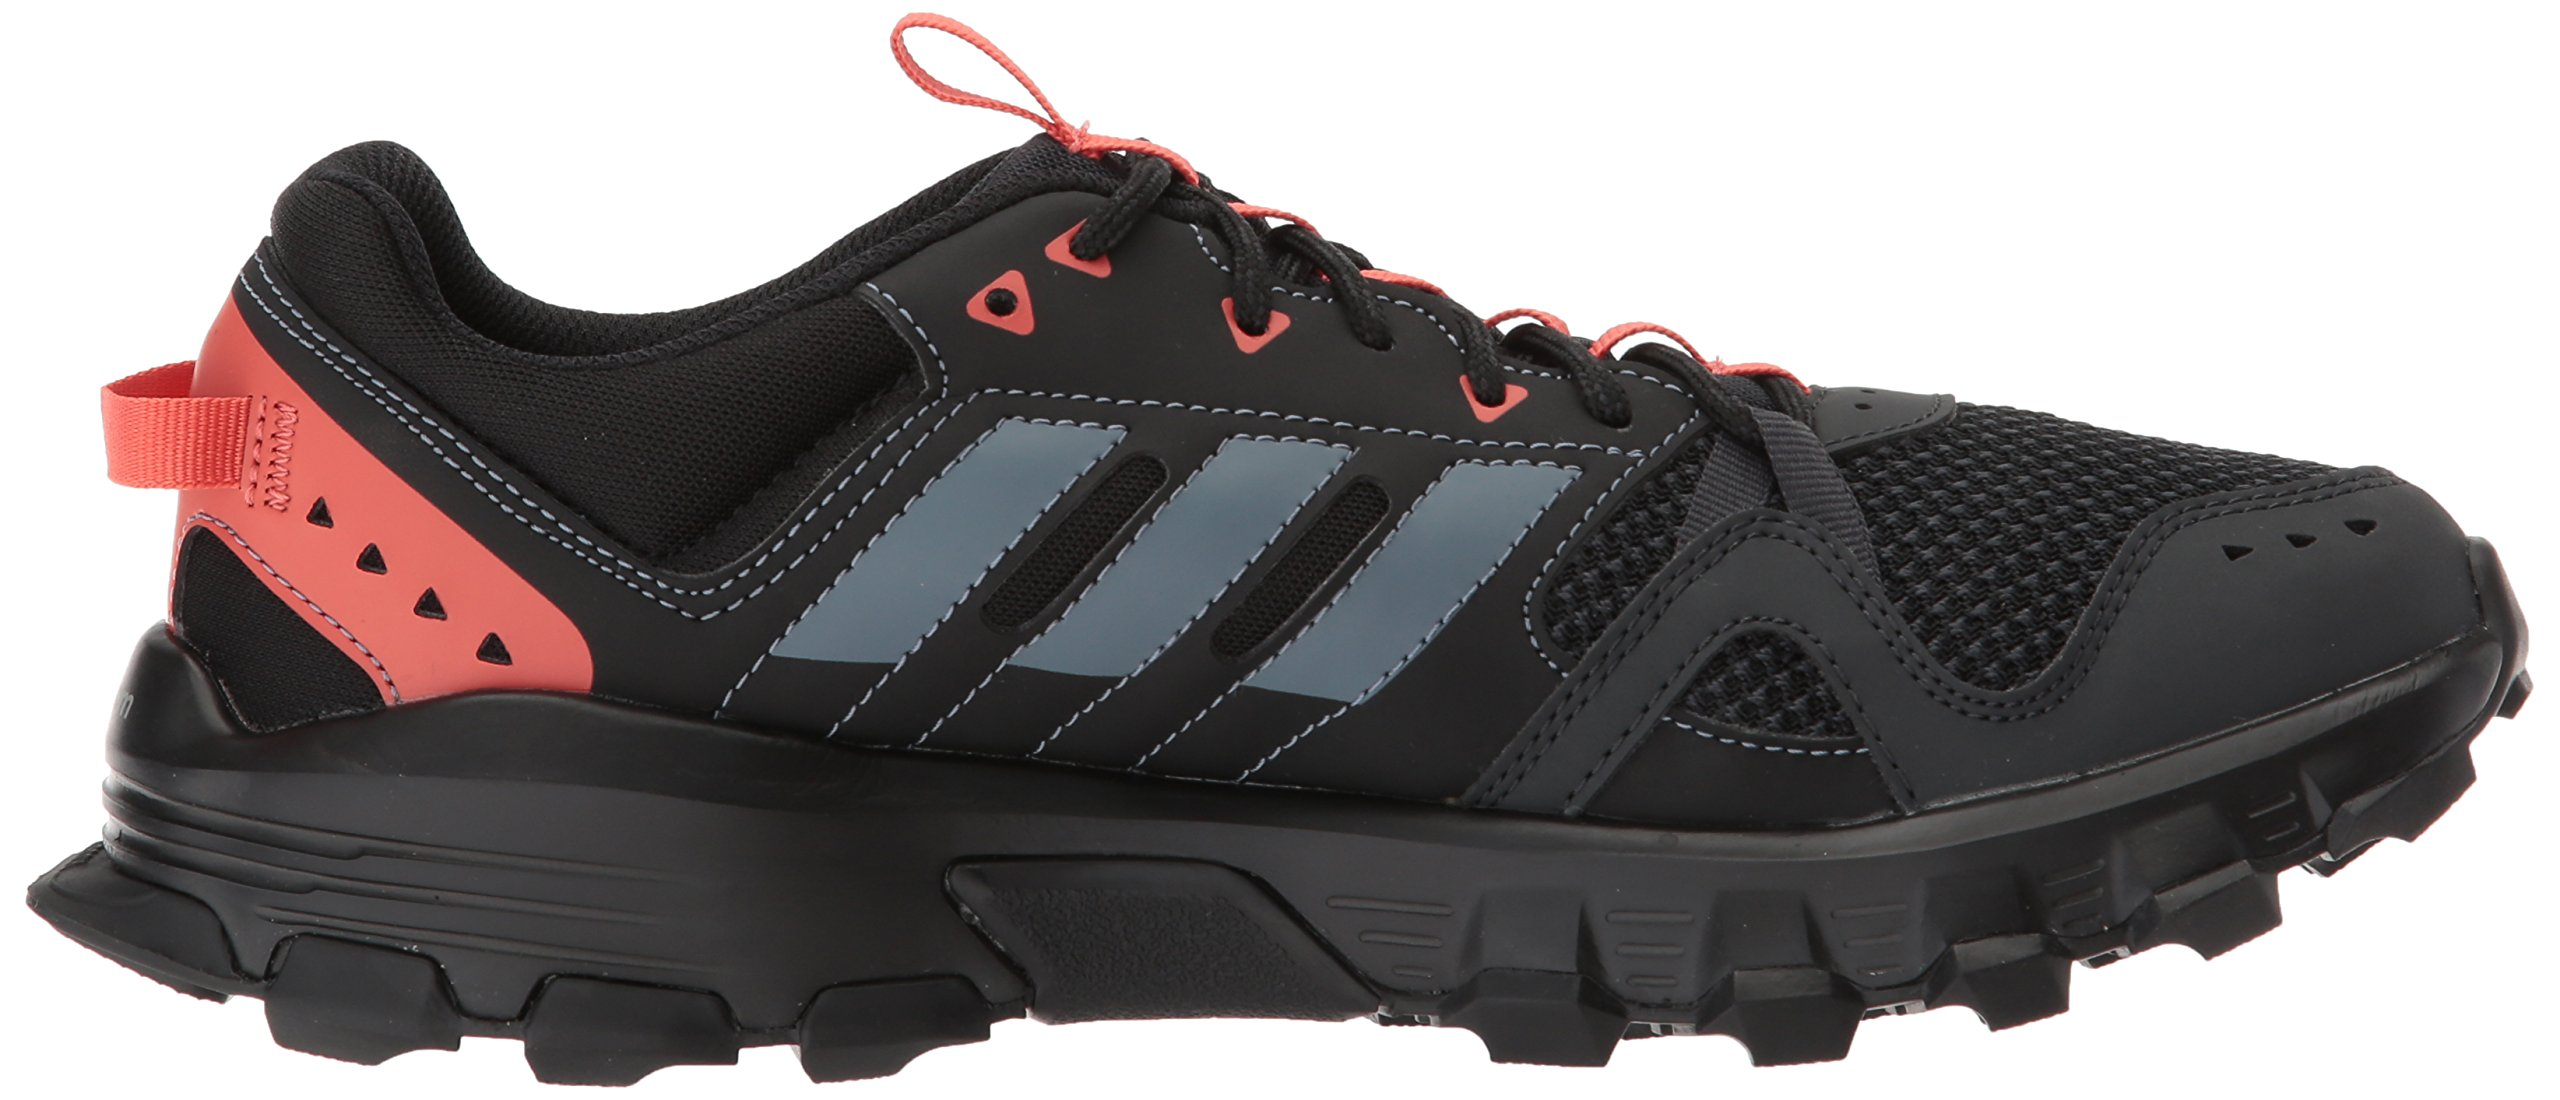 adidas Women's Rockadia w Trail Running Shoe, Carbon/Raw Steel/Trace Scarlet, 6 M US by adidas (Image #7)